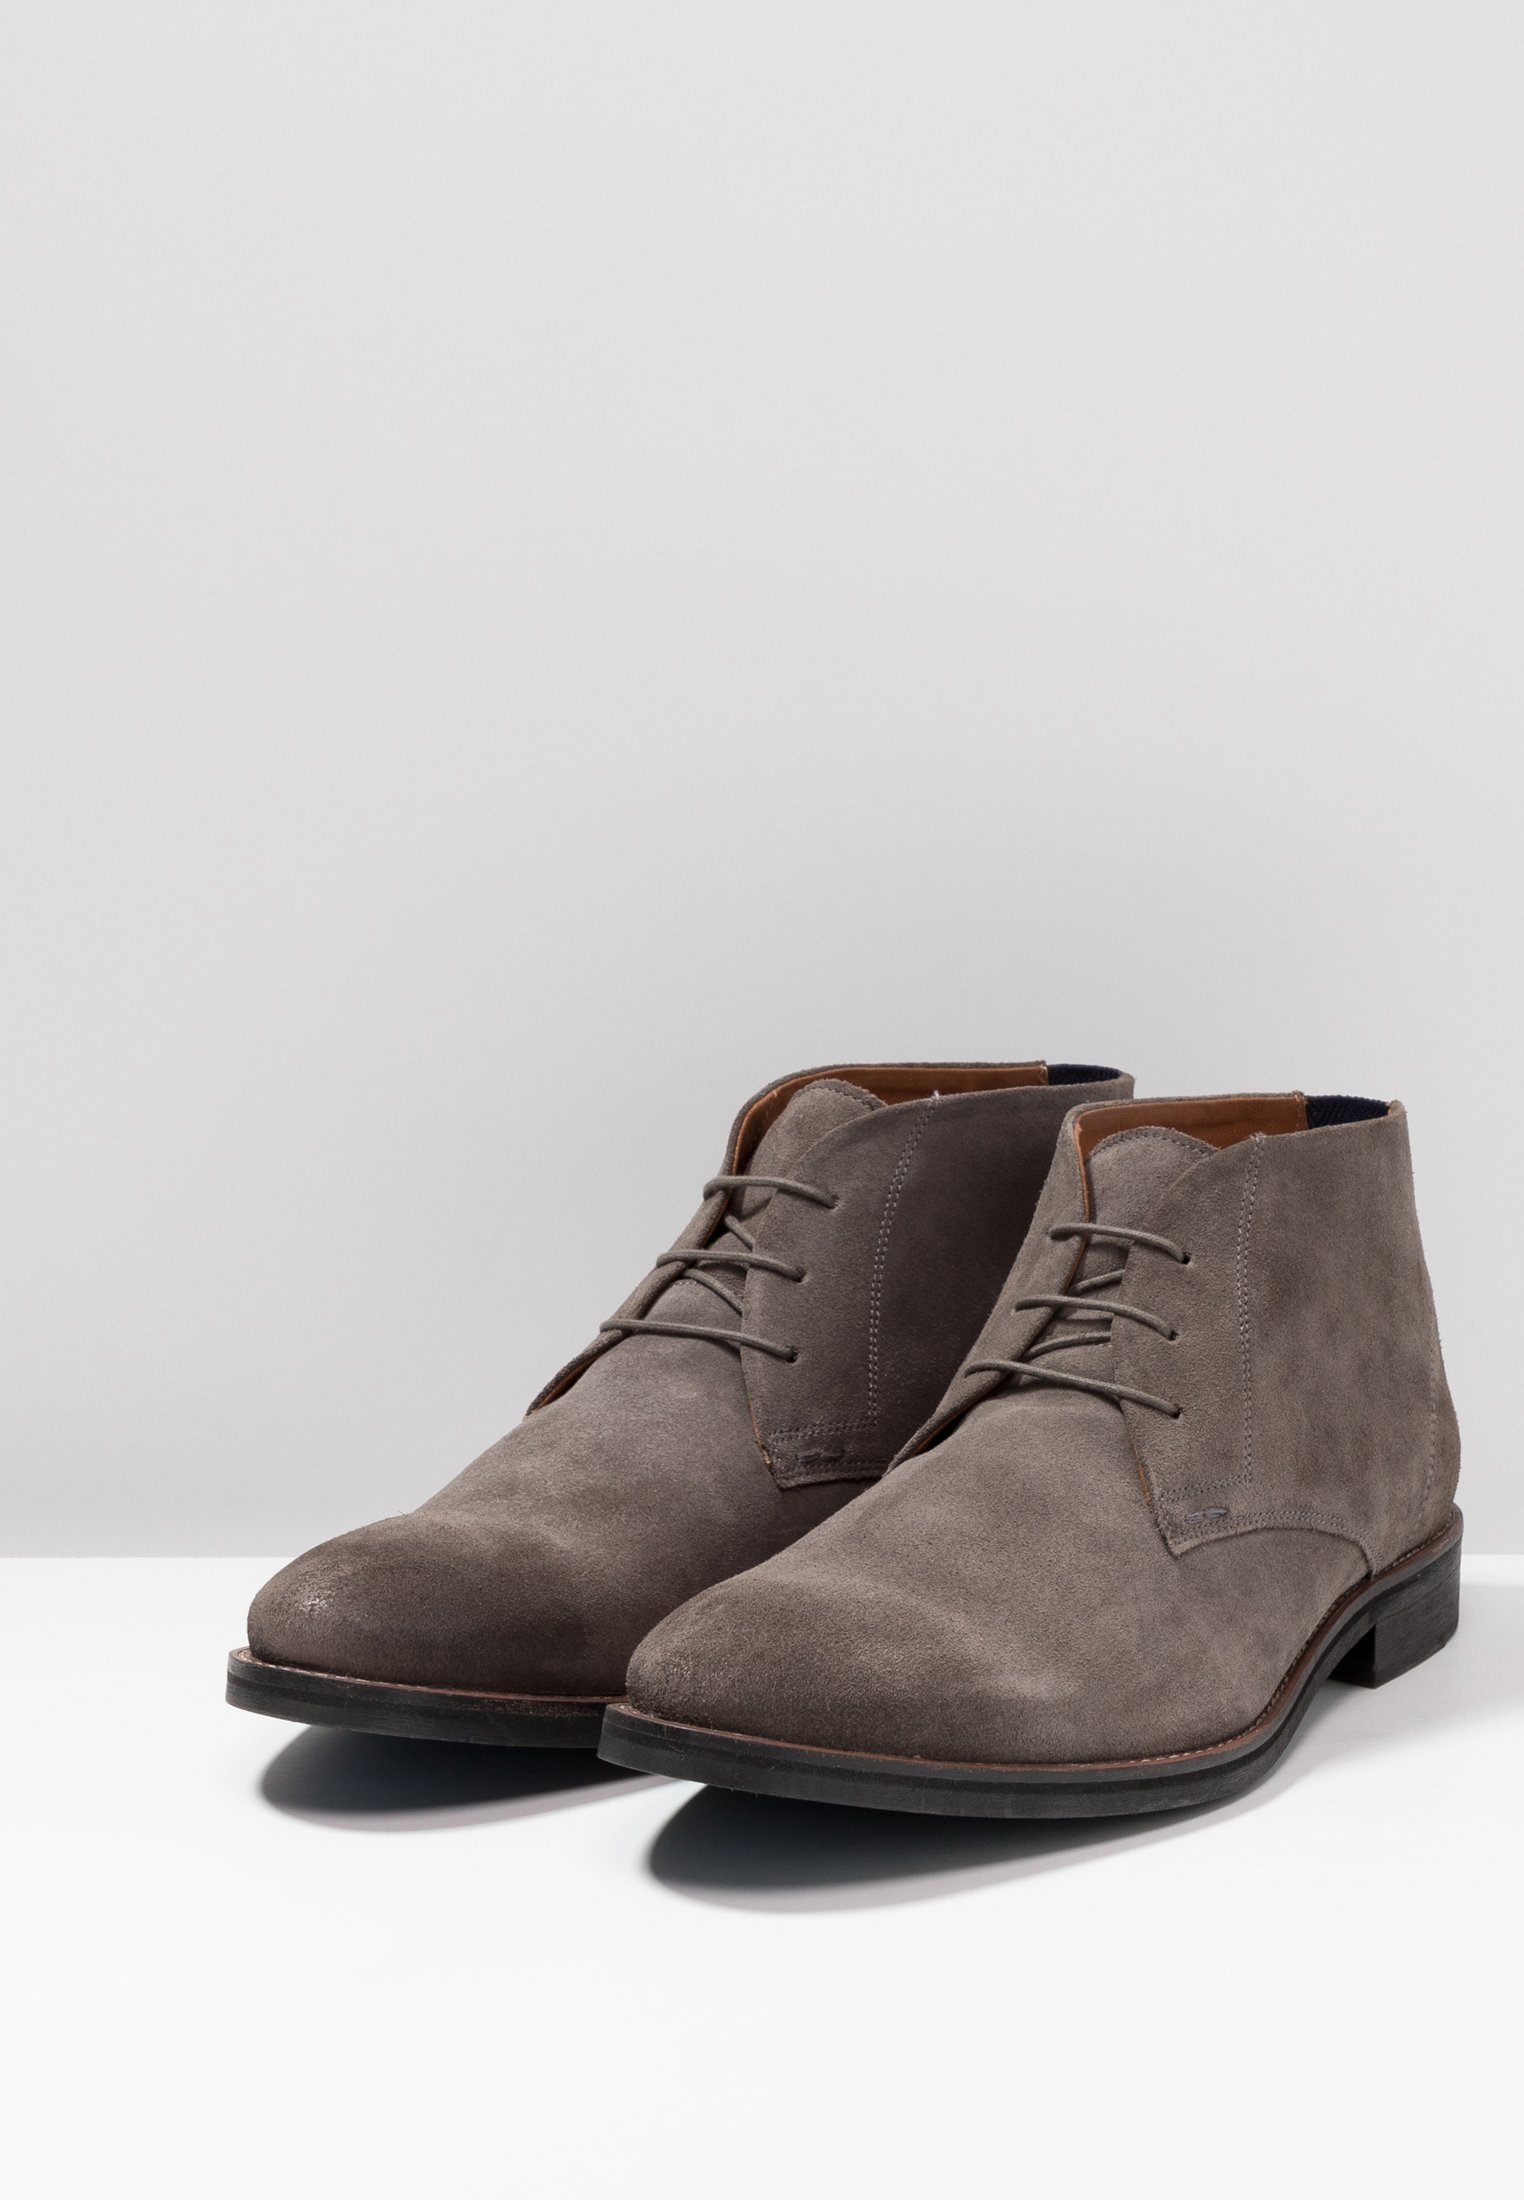 JOE lacets BROWNS grey BOOTSChaussures CHUKKA à IYbf7yv6gm